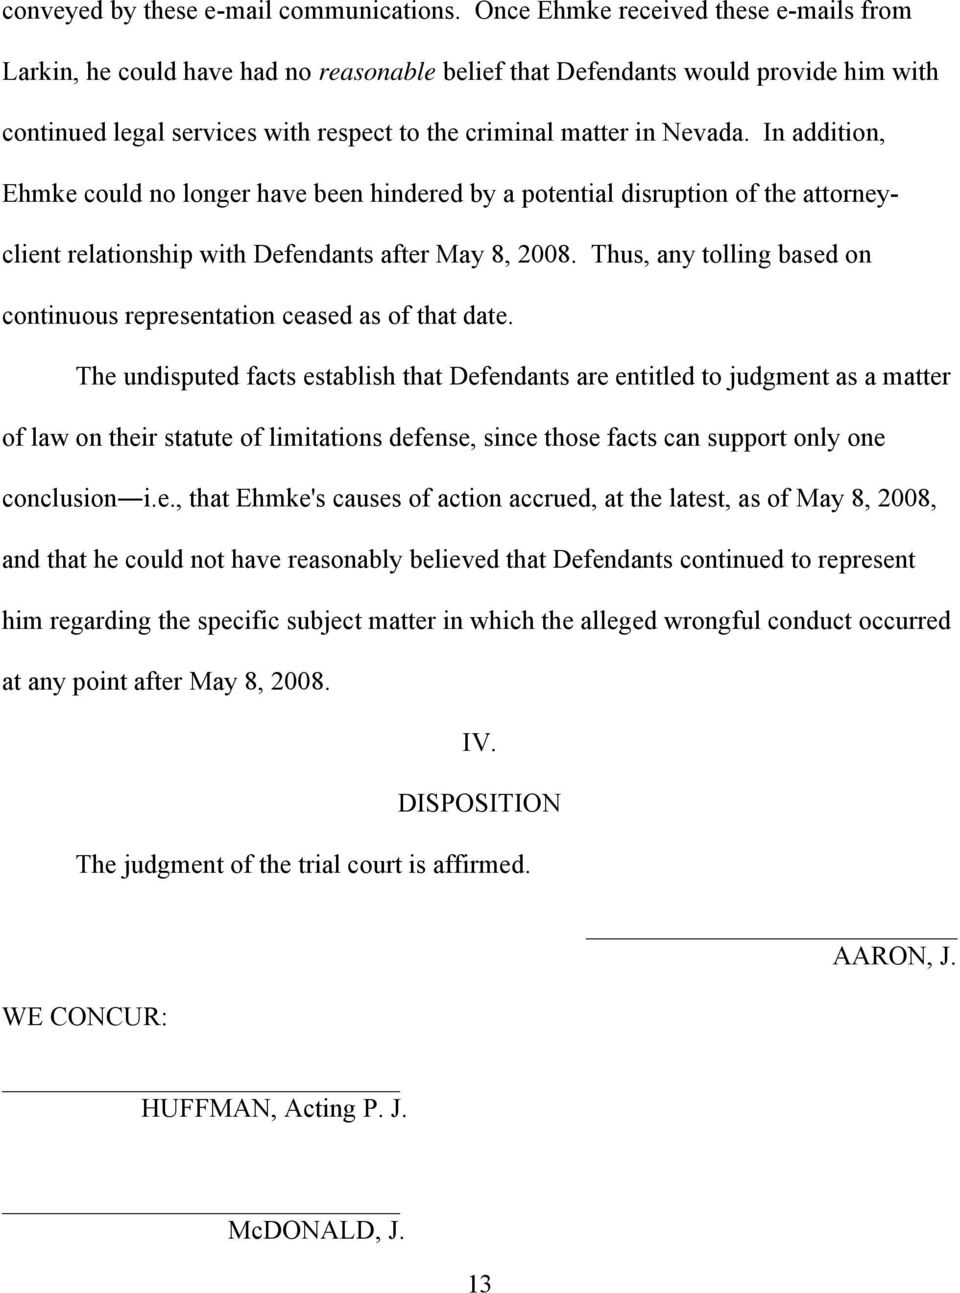 In addition, Ehmke could no longer have been hindered by a potential disruption of the attorneyclient relationship with Defendants after May 8, 2008.